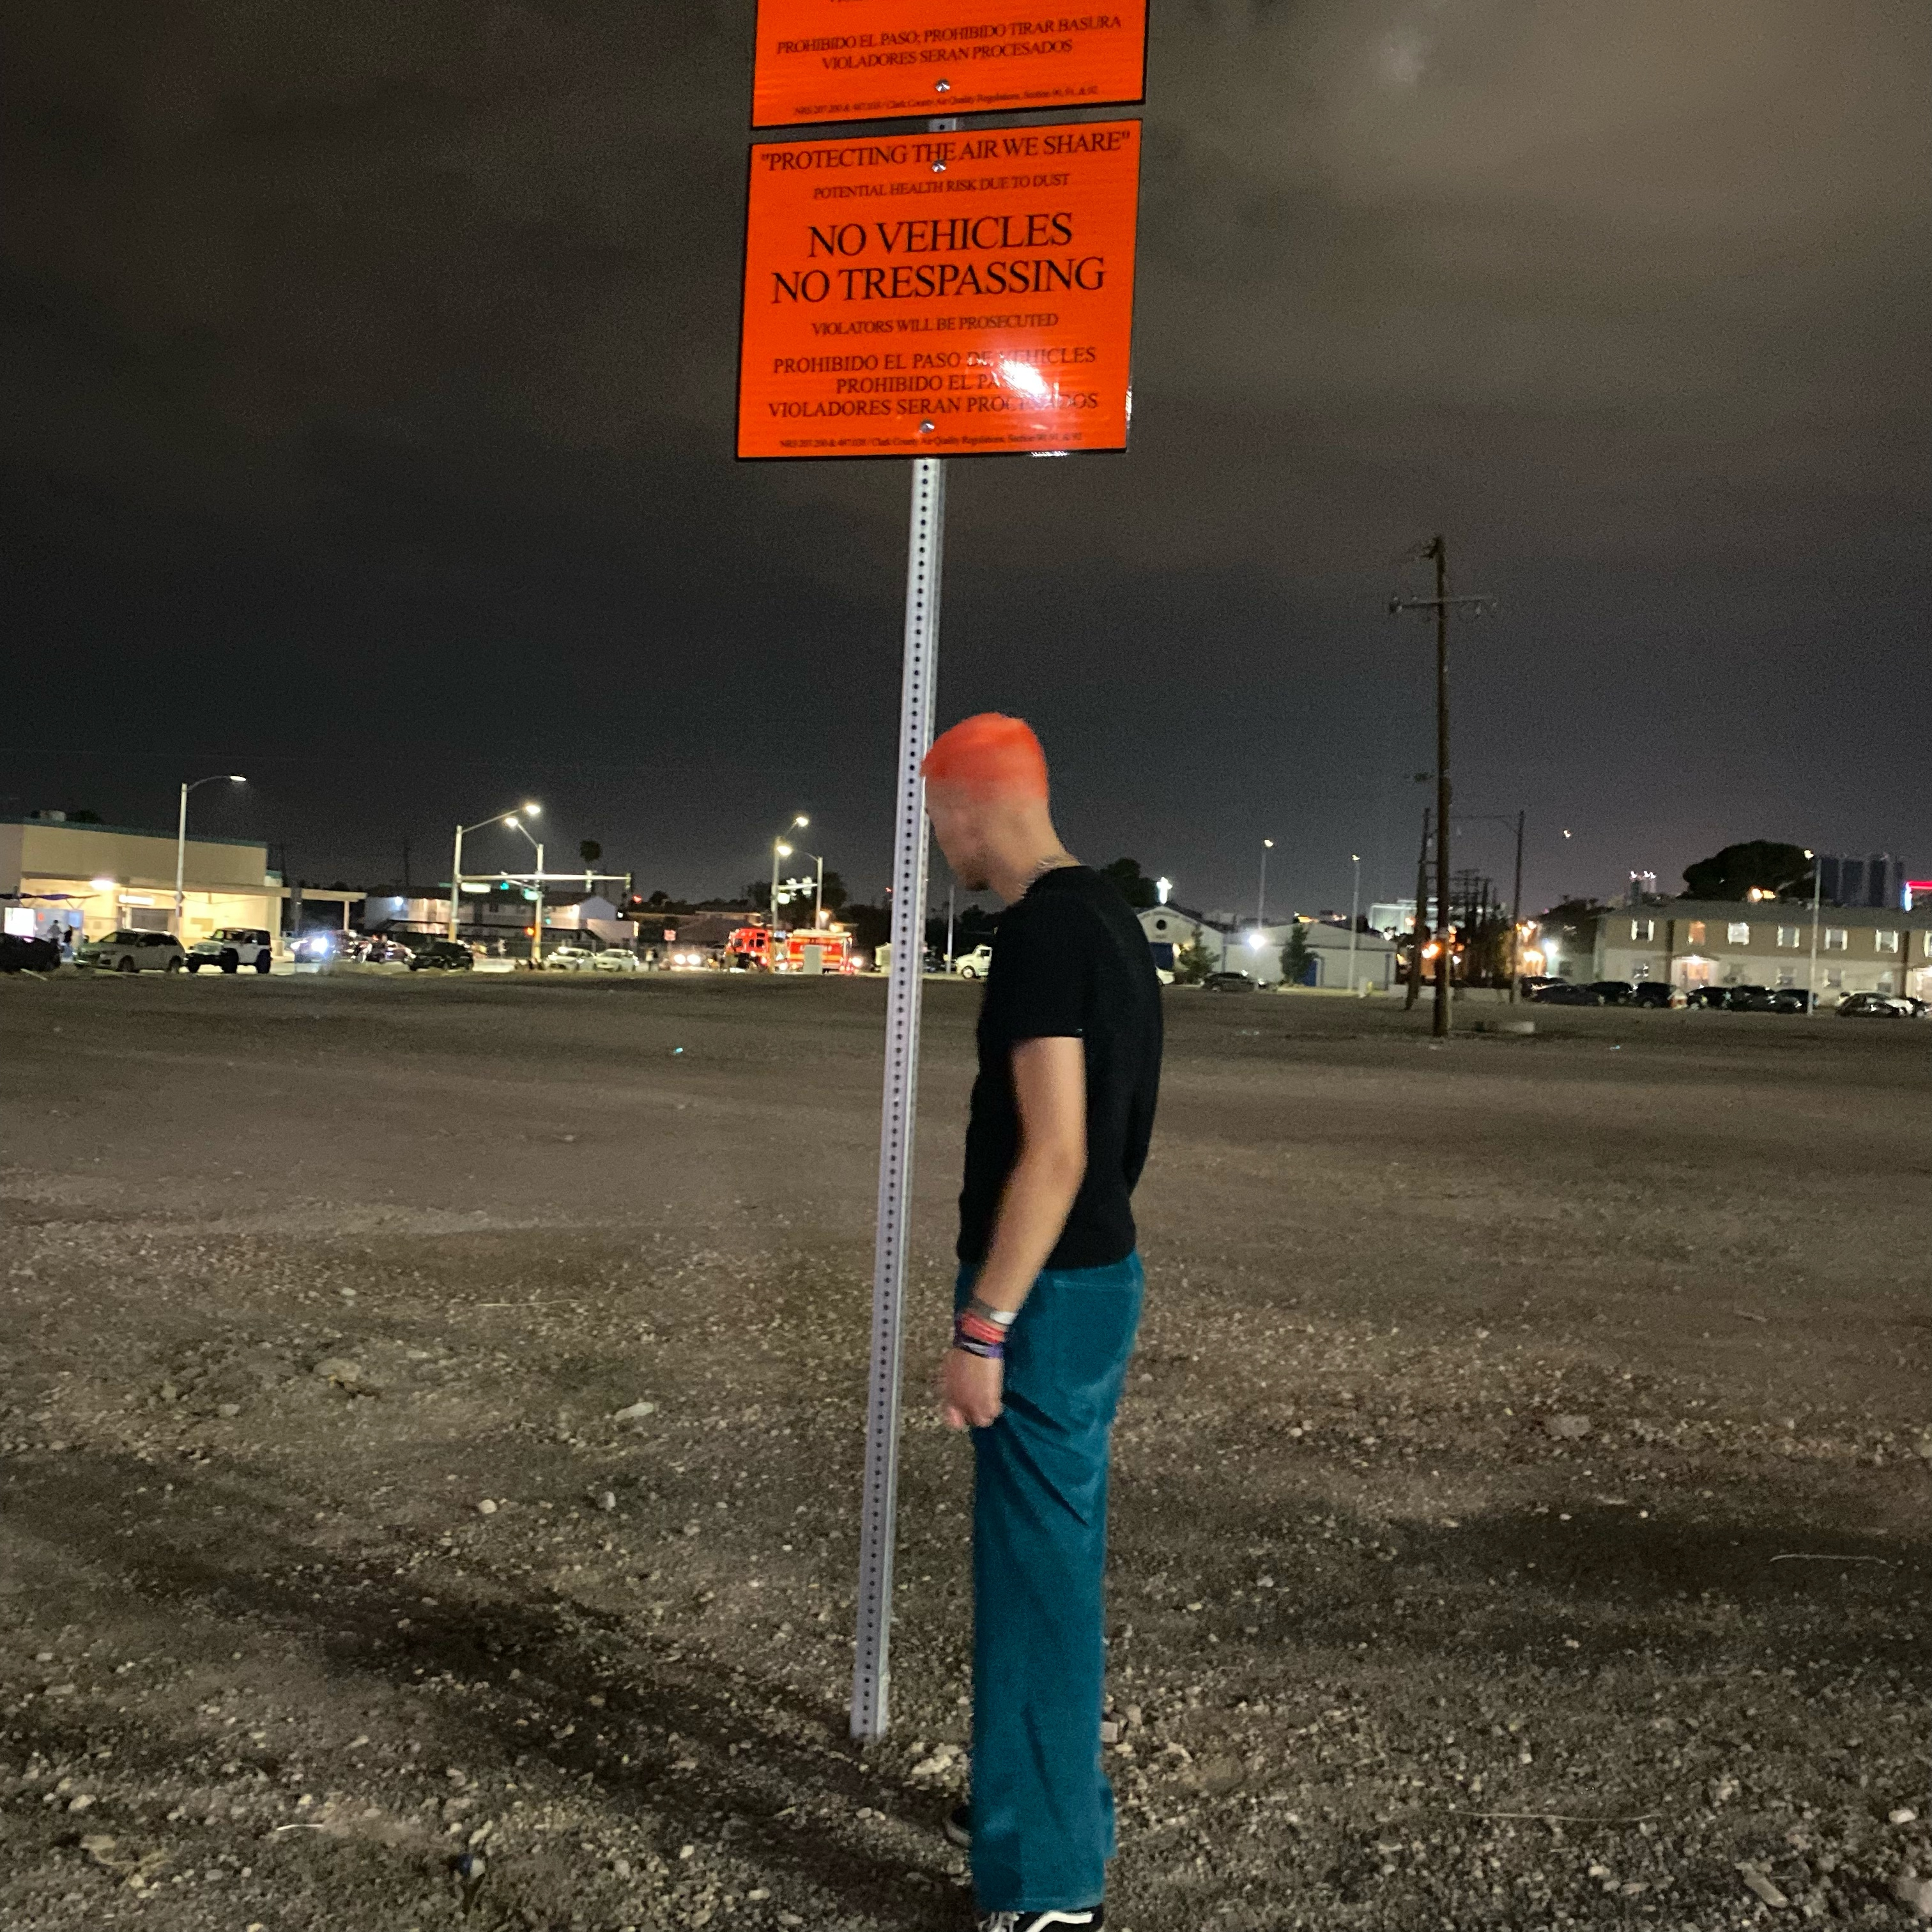 A man stands in front of a sign saying no vehicles no trespassing in the middle of a barren space at night.